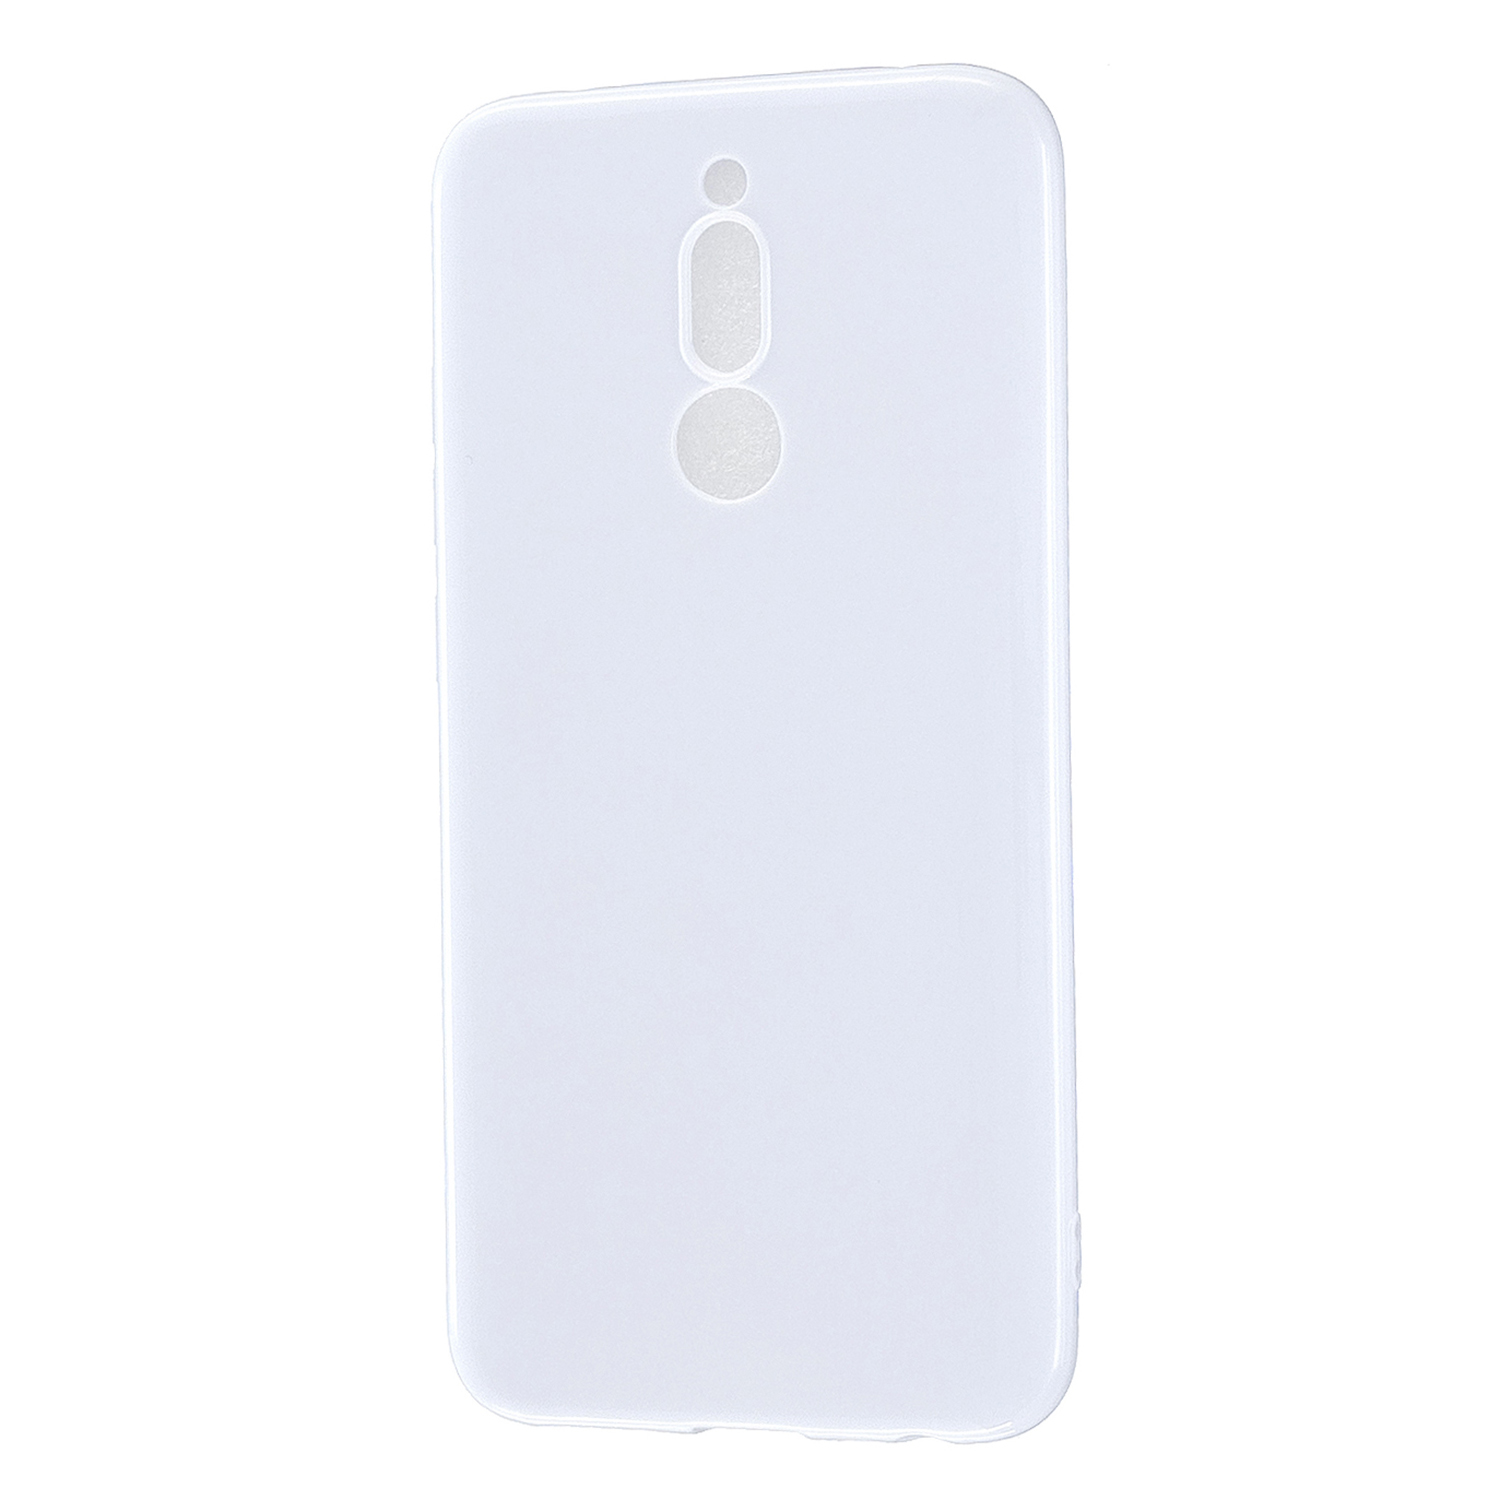 For Redmi 8 / Redmi 8A Cellphone Cover Glossy TPU Phone Case Defender Full Body Protection Smartphone Shell Milk white